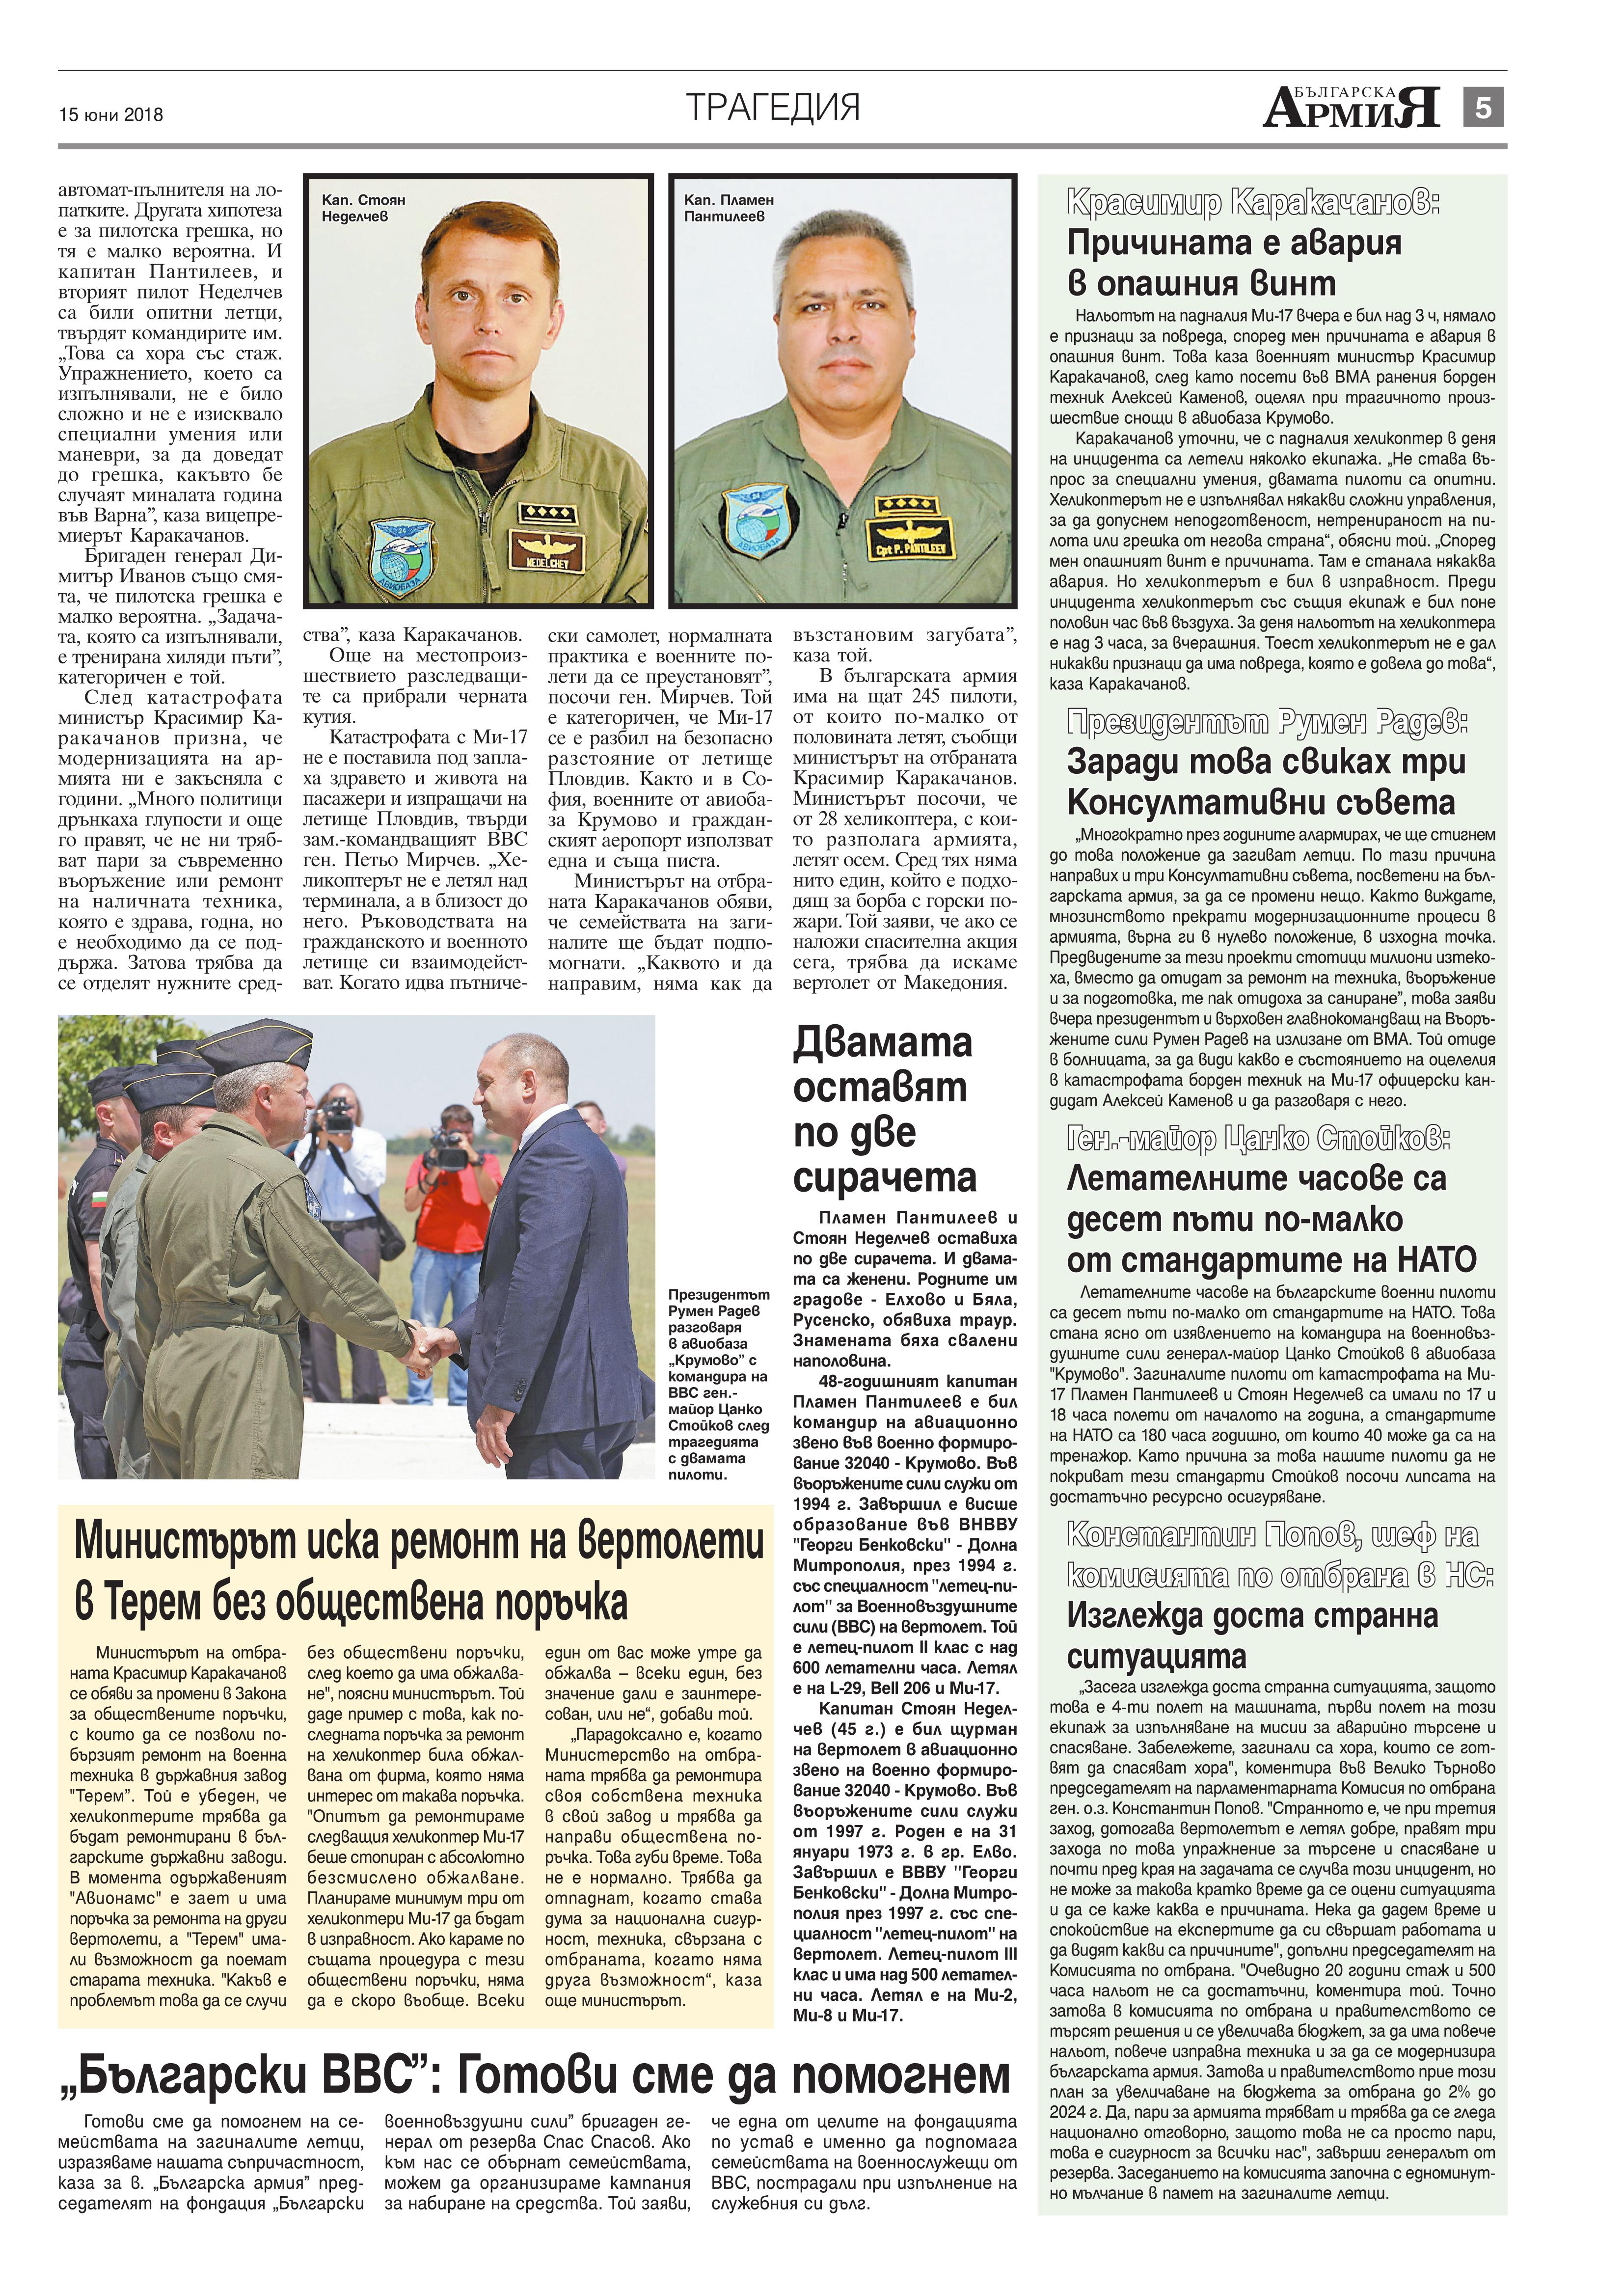 http://armymedia.bg/wp-content/uploads/2015/06/05.page1_-52.jpg